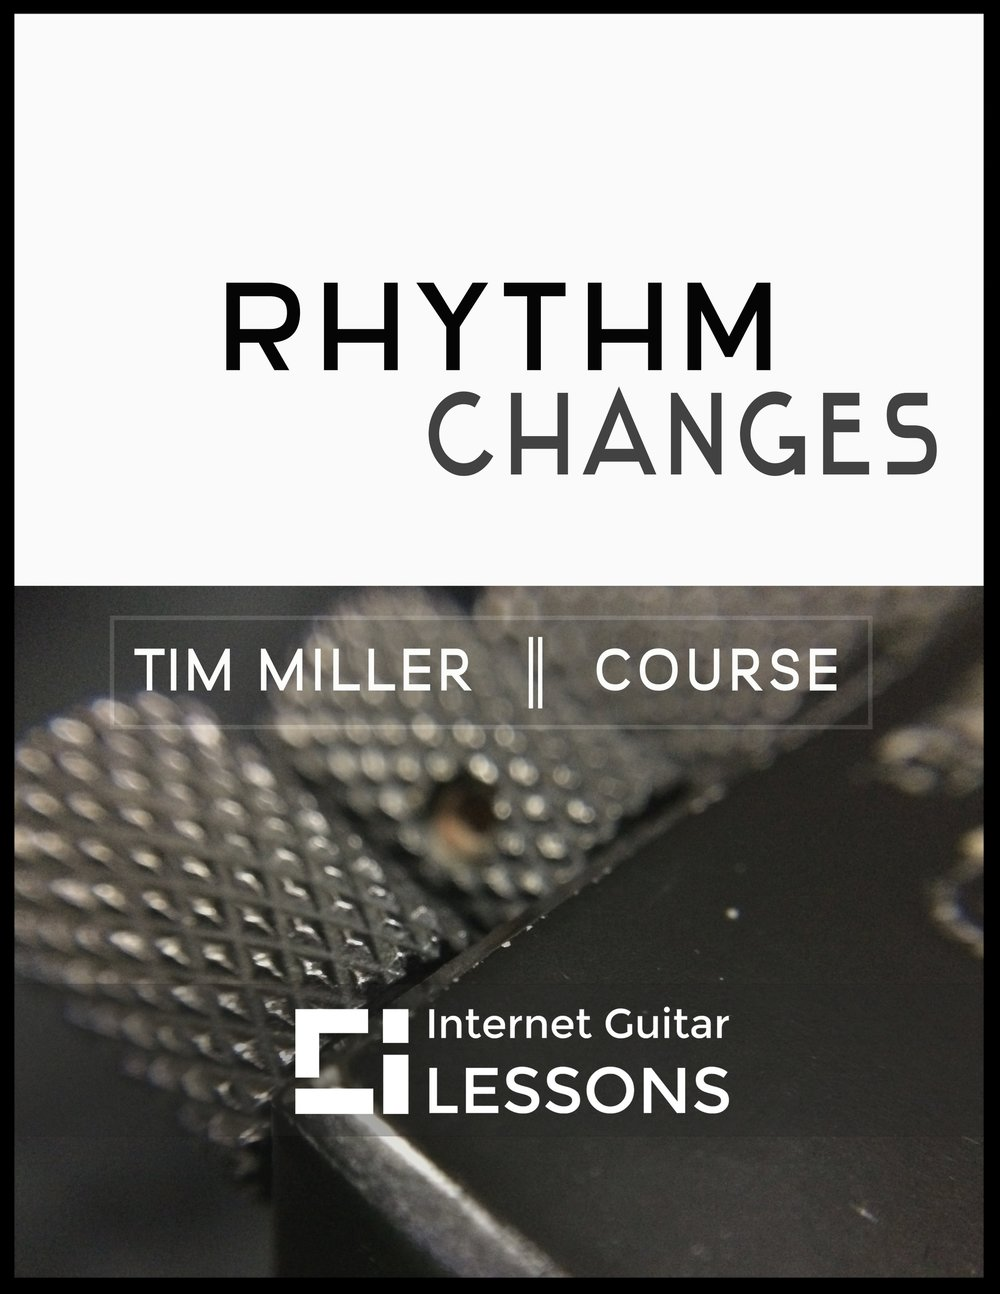 Rhythm Changes 1.17 flat.jpg